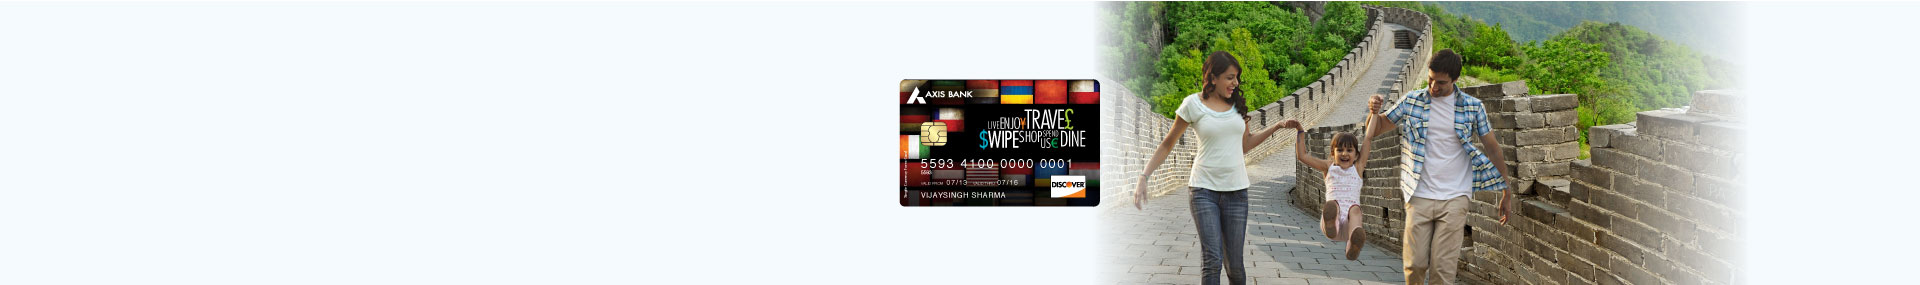 ForexCard_v04_DinersCard_ProductLPBanner_Web